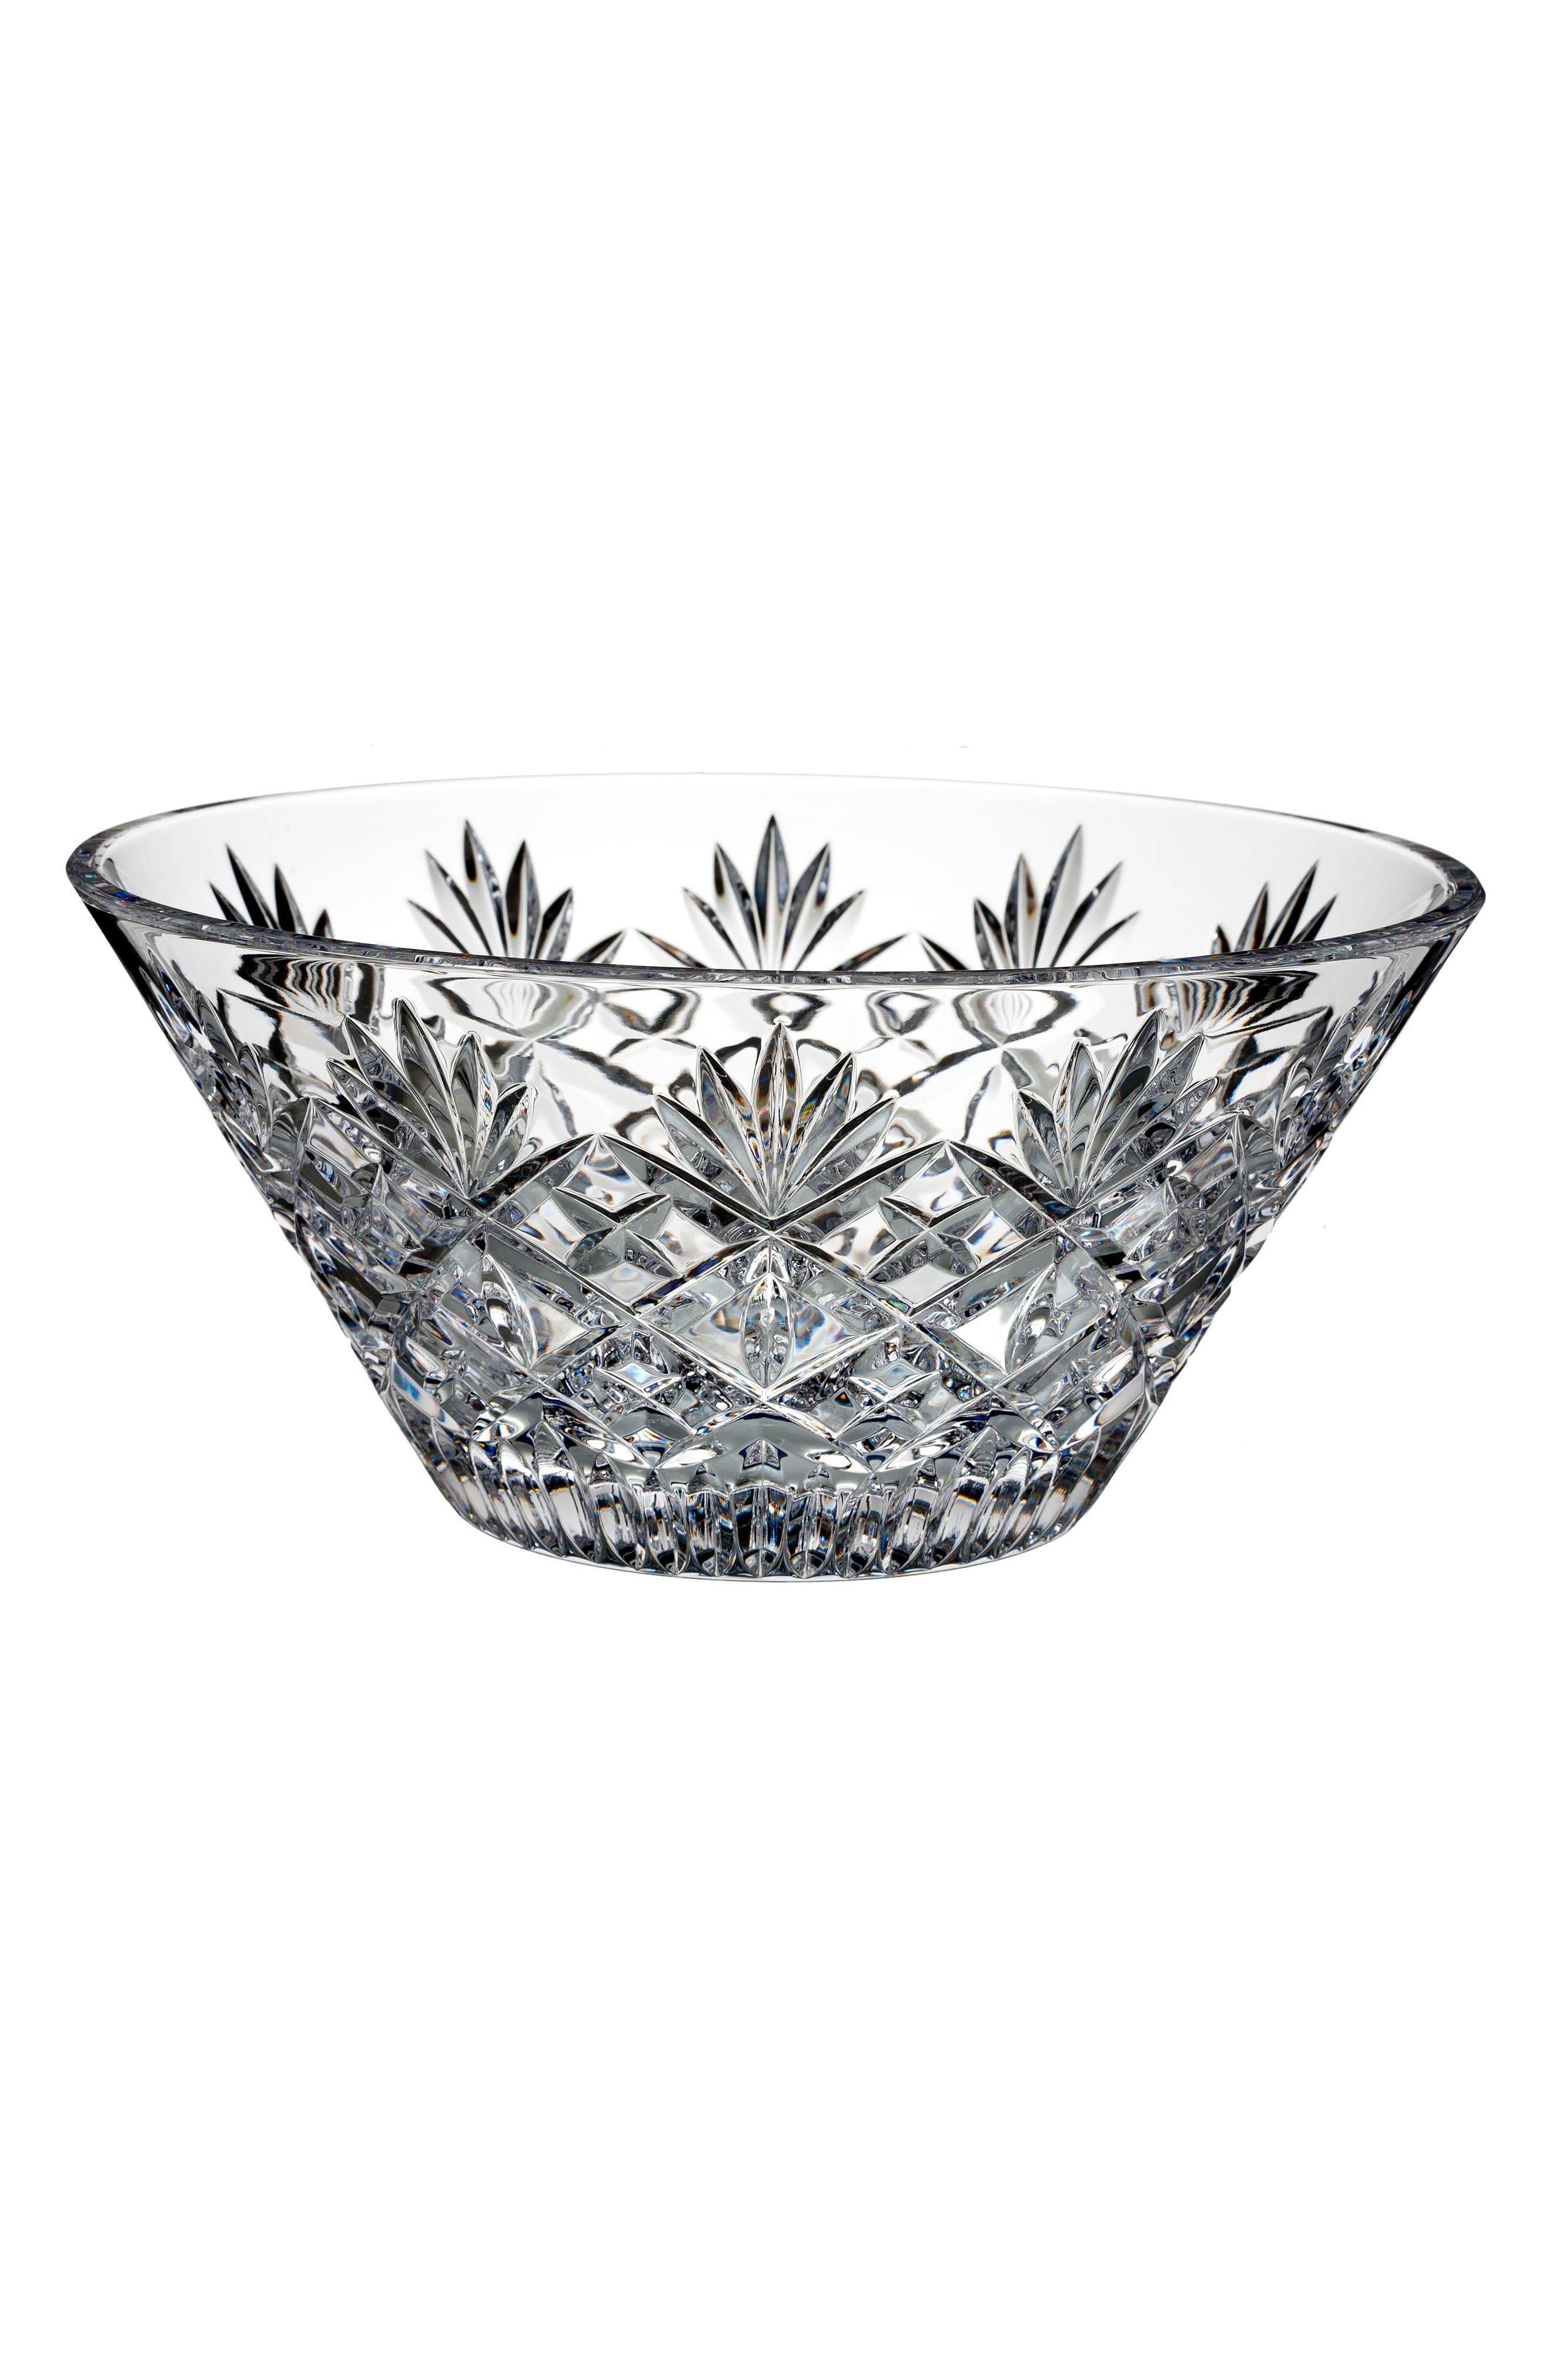 Northbridge Lead Crystal Bowl,                             Alternate thumbnail 2, color,                             100